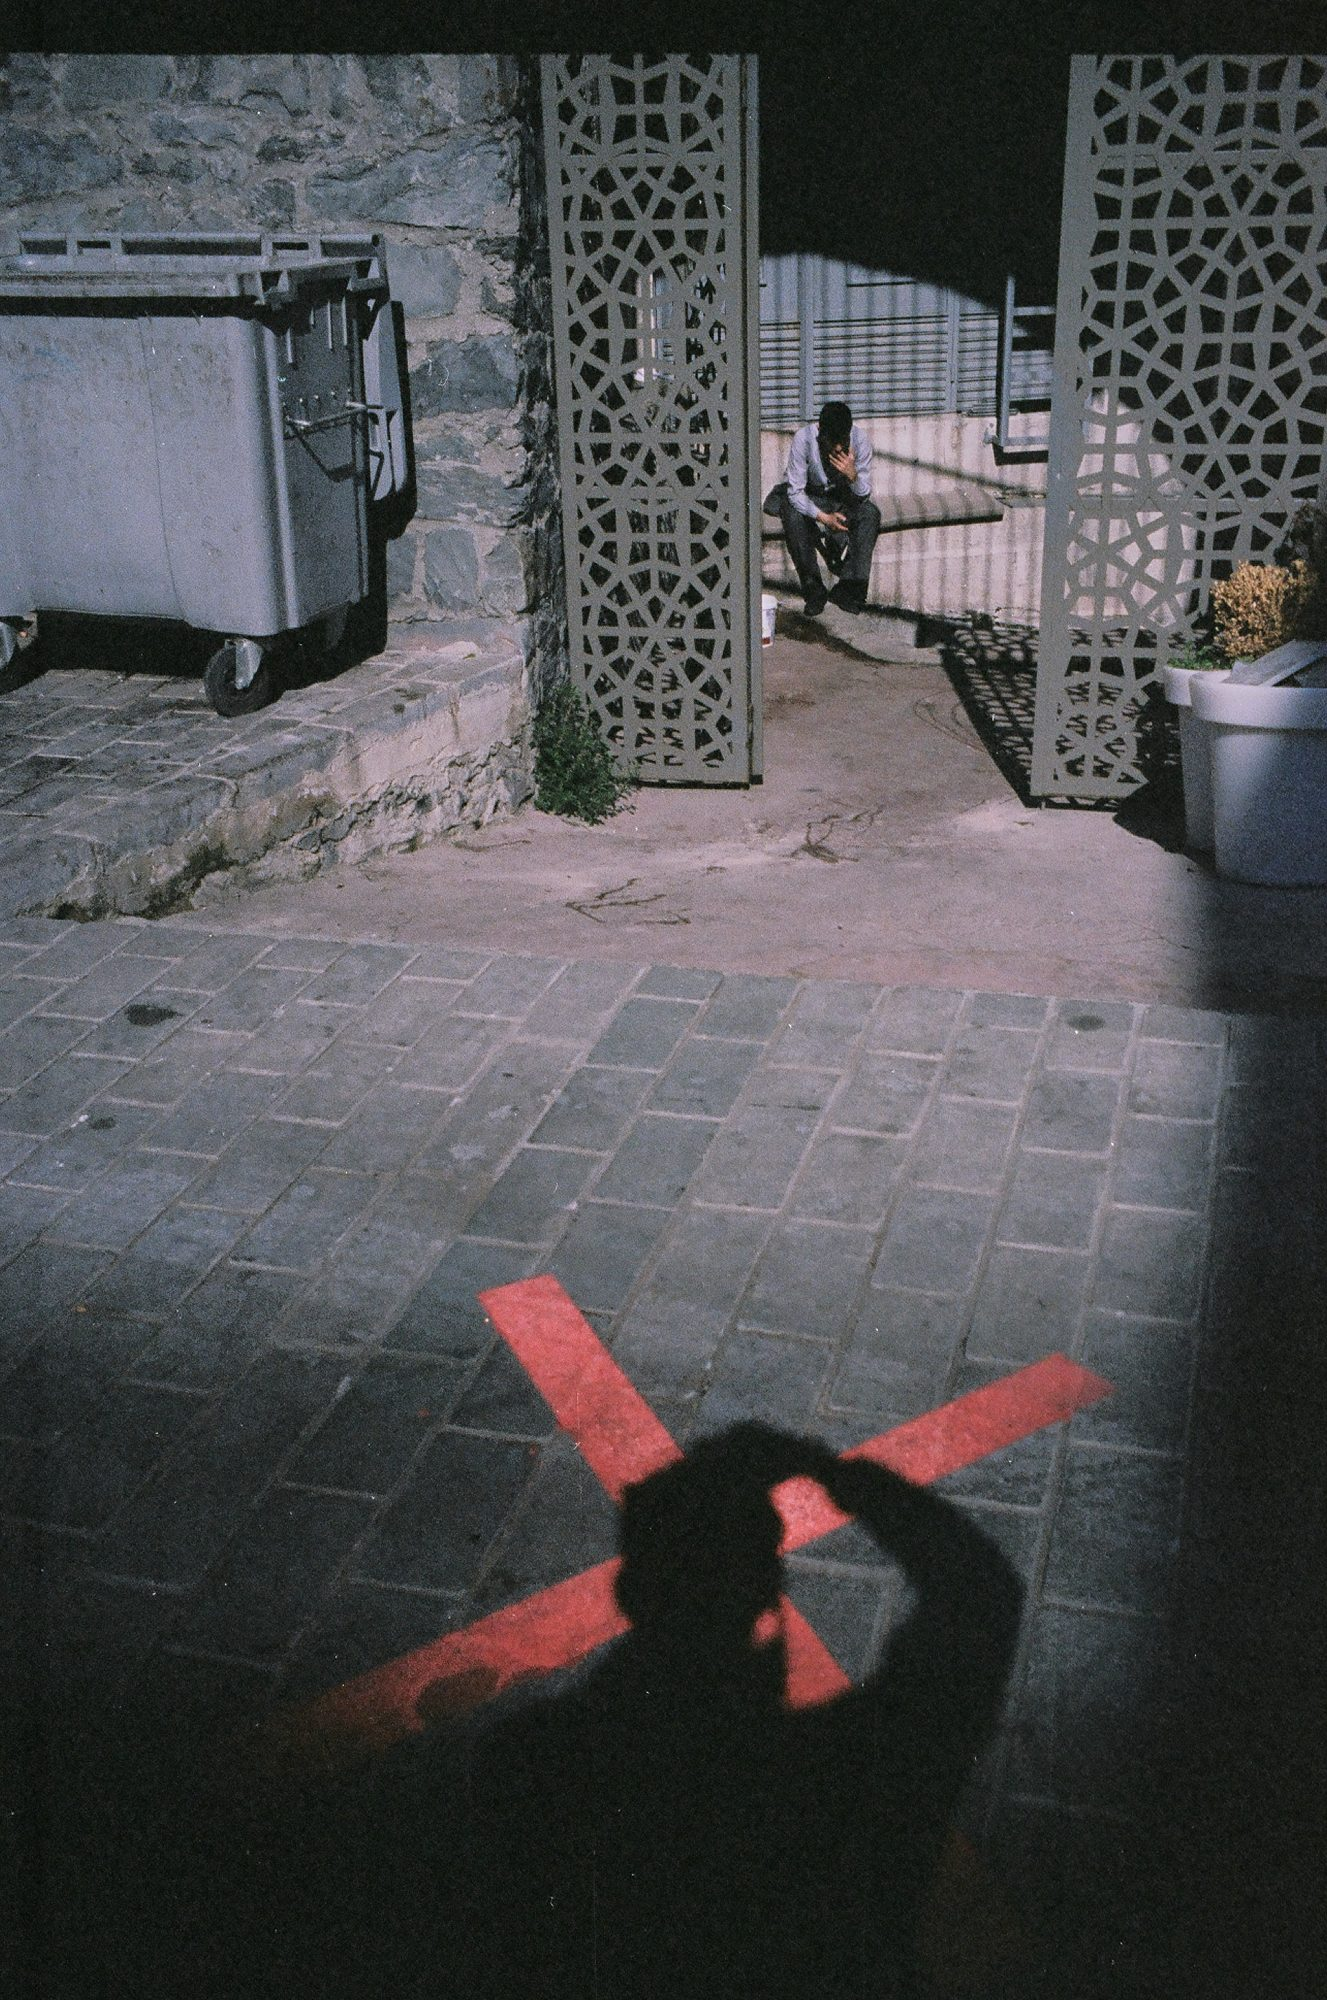 Selfie with X on my shadow, Istanbul street photo, 2013